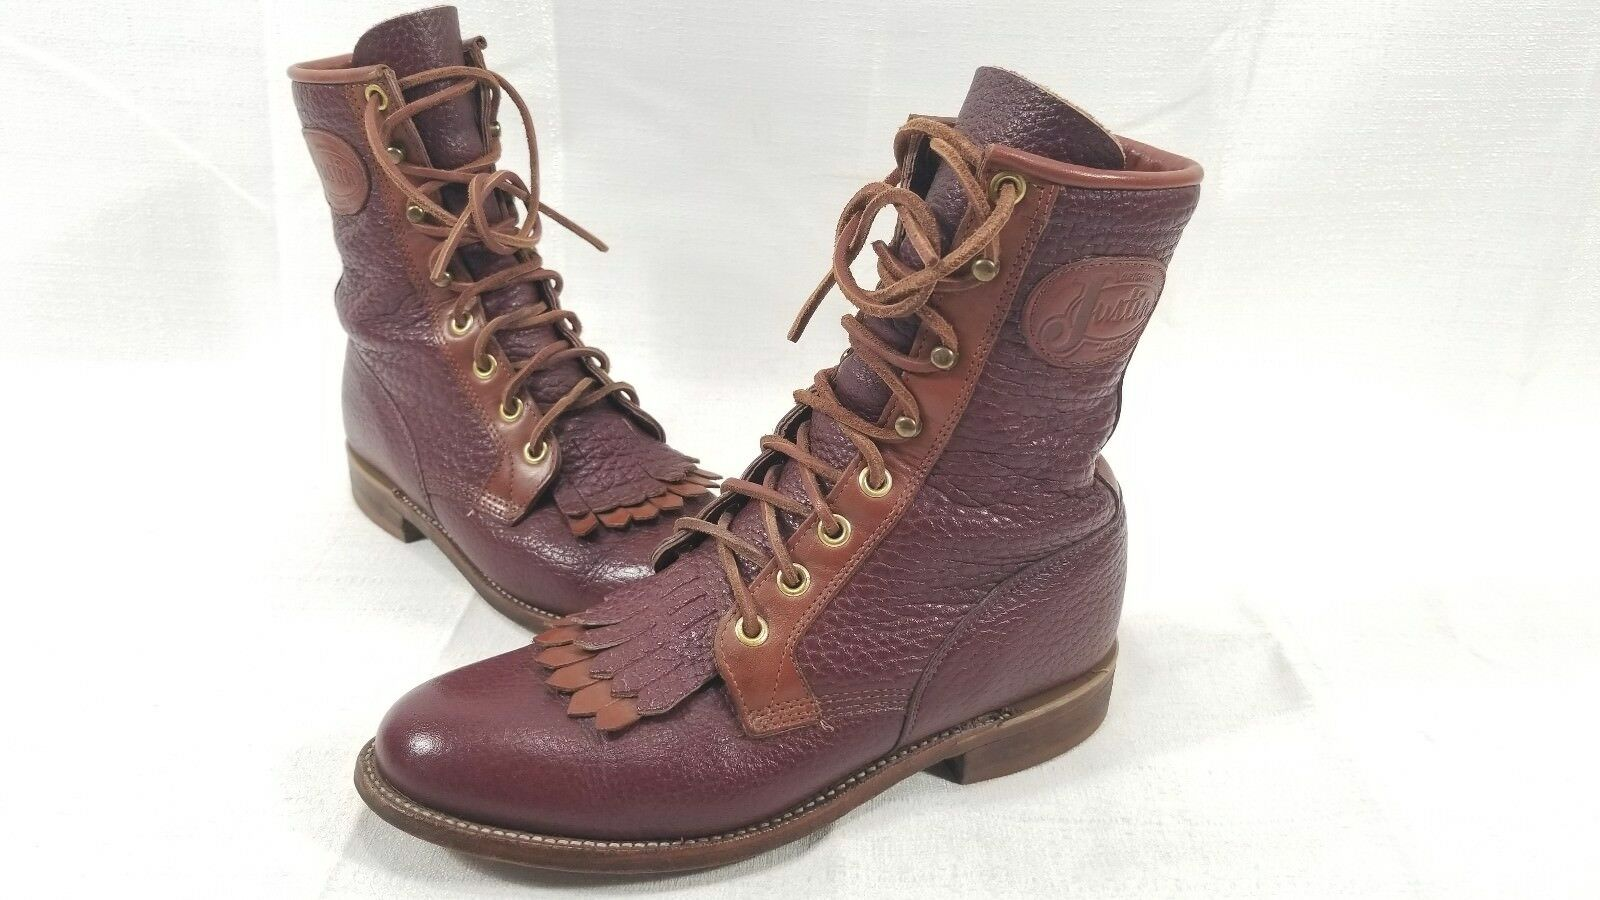 Original Justin Lacer Womens Womens Womens Size 5 B Dark Red Brown Lace Up Kiltie Boots ac241b